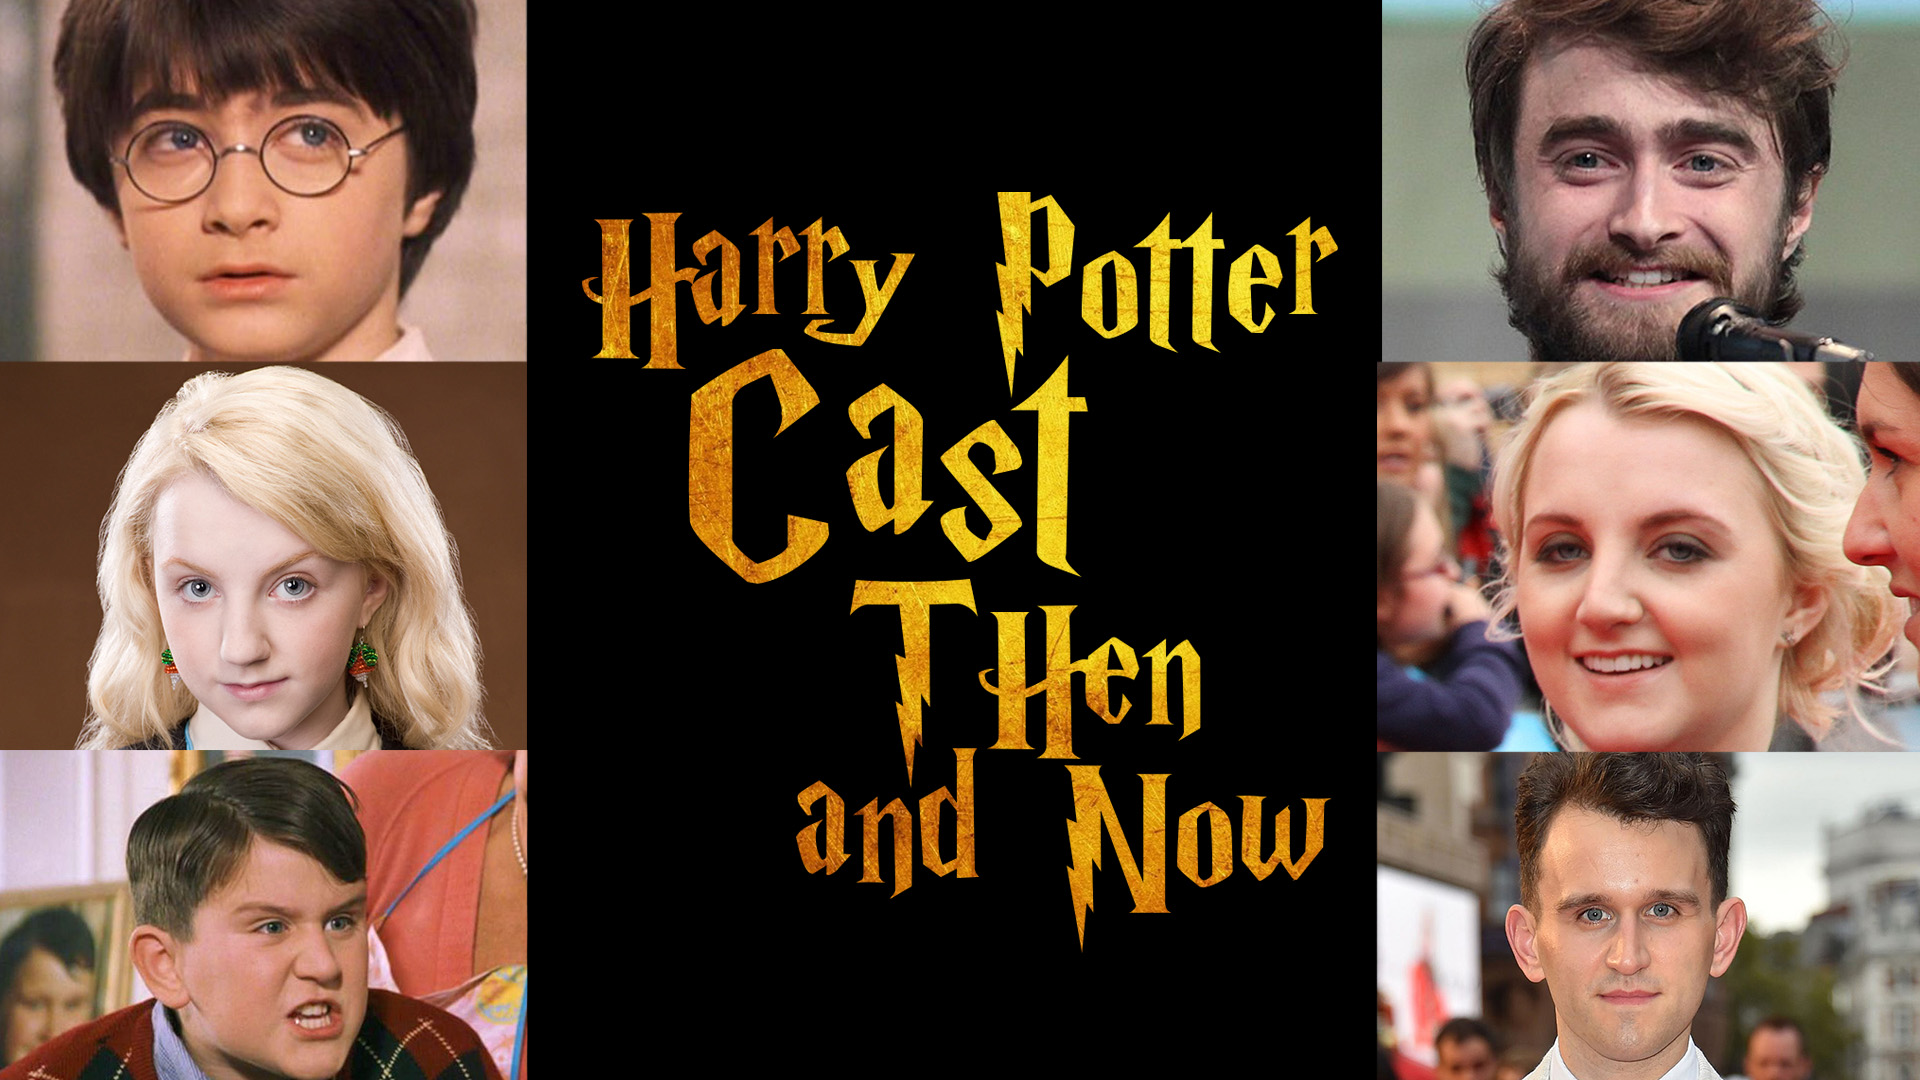 Harry Potter Cast Then And Now 2020 Daily Reader Global